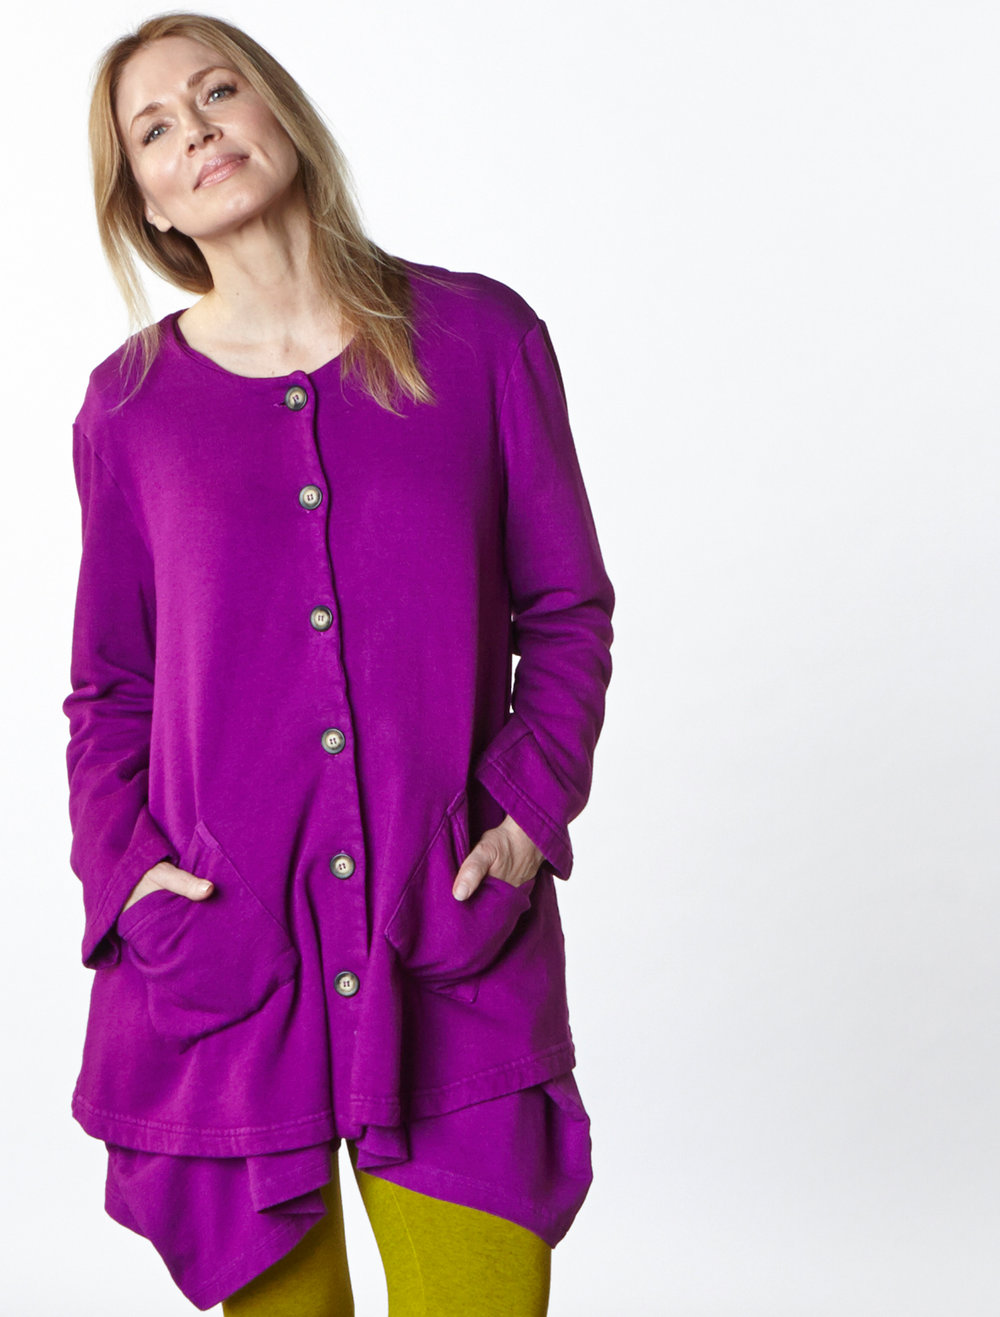 Jupiter Jacket in Rhapsody Bamboo Fleece, Nahla Tunic in Rhapsody Bamboo French Terry